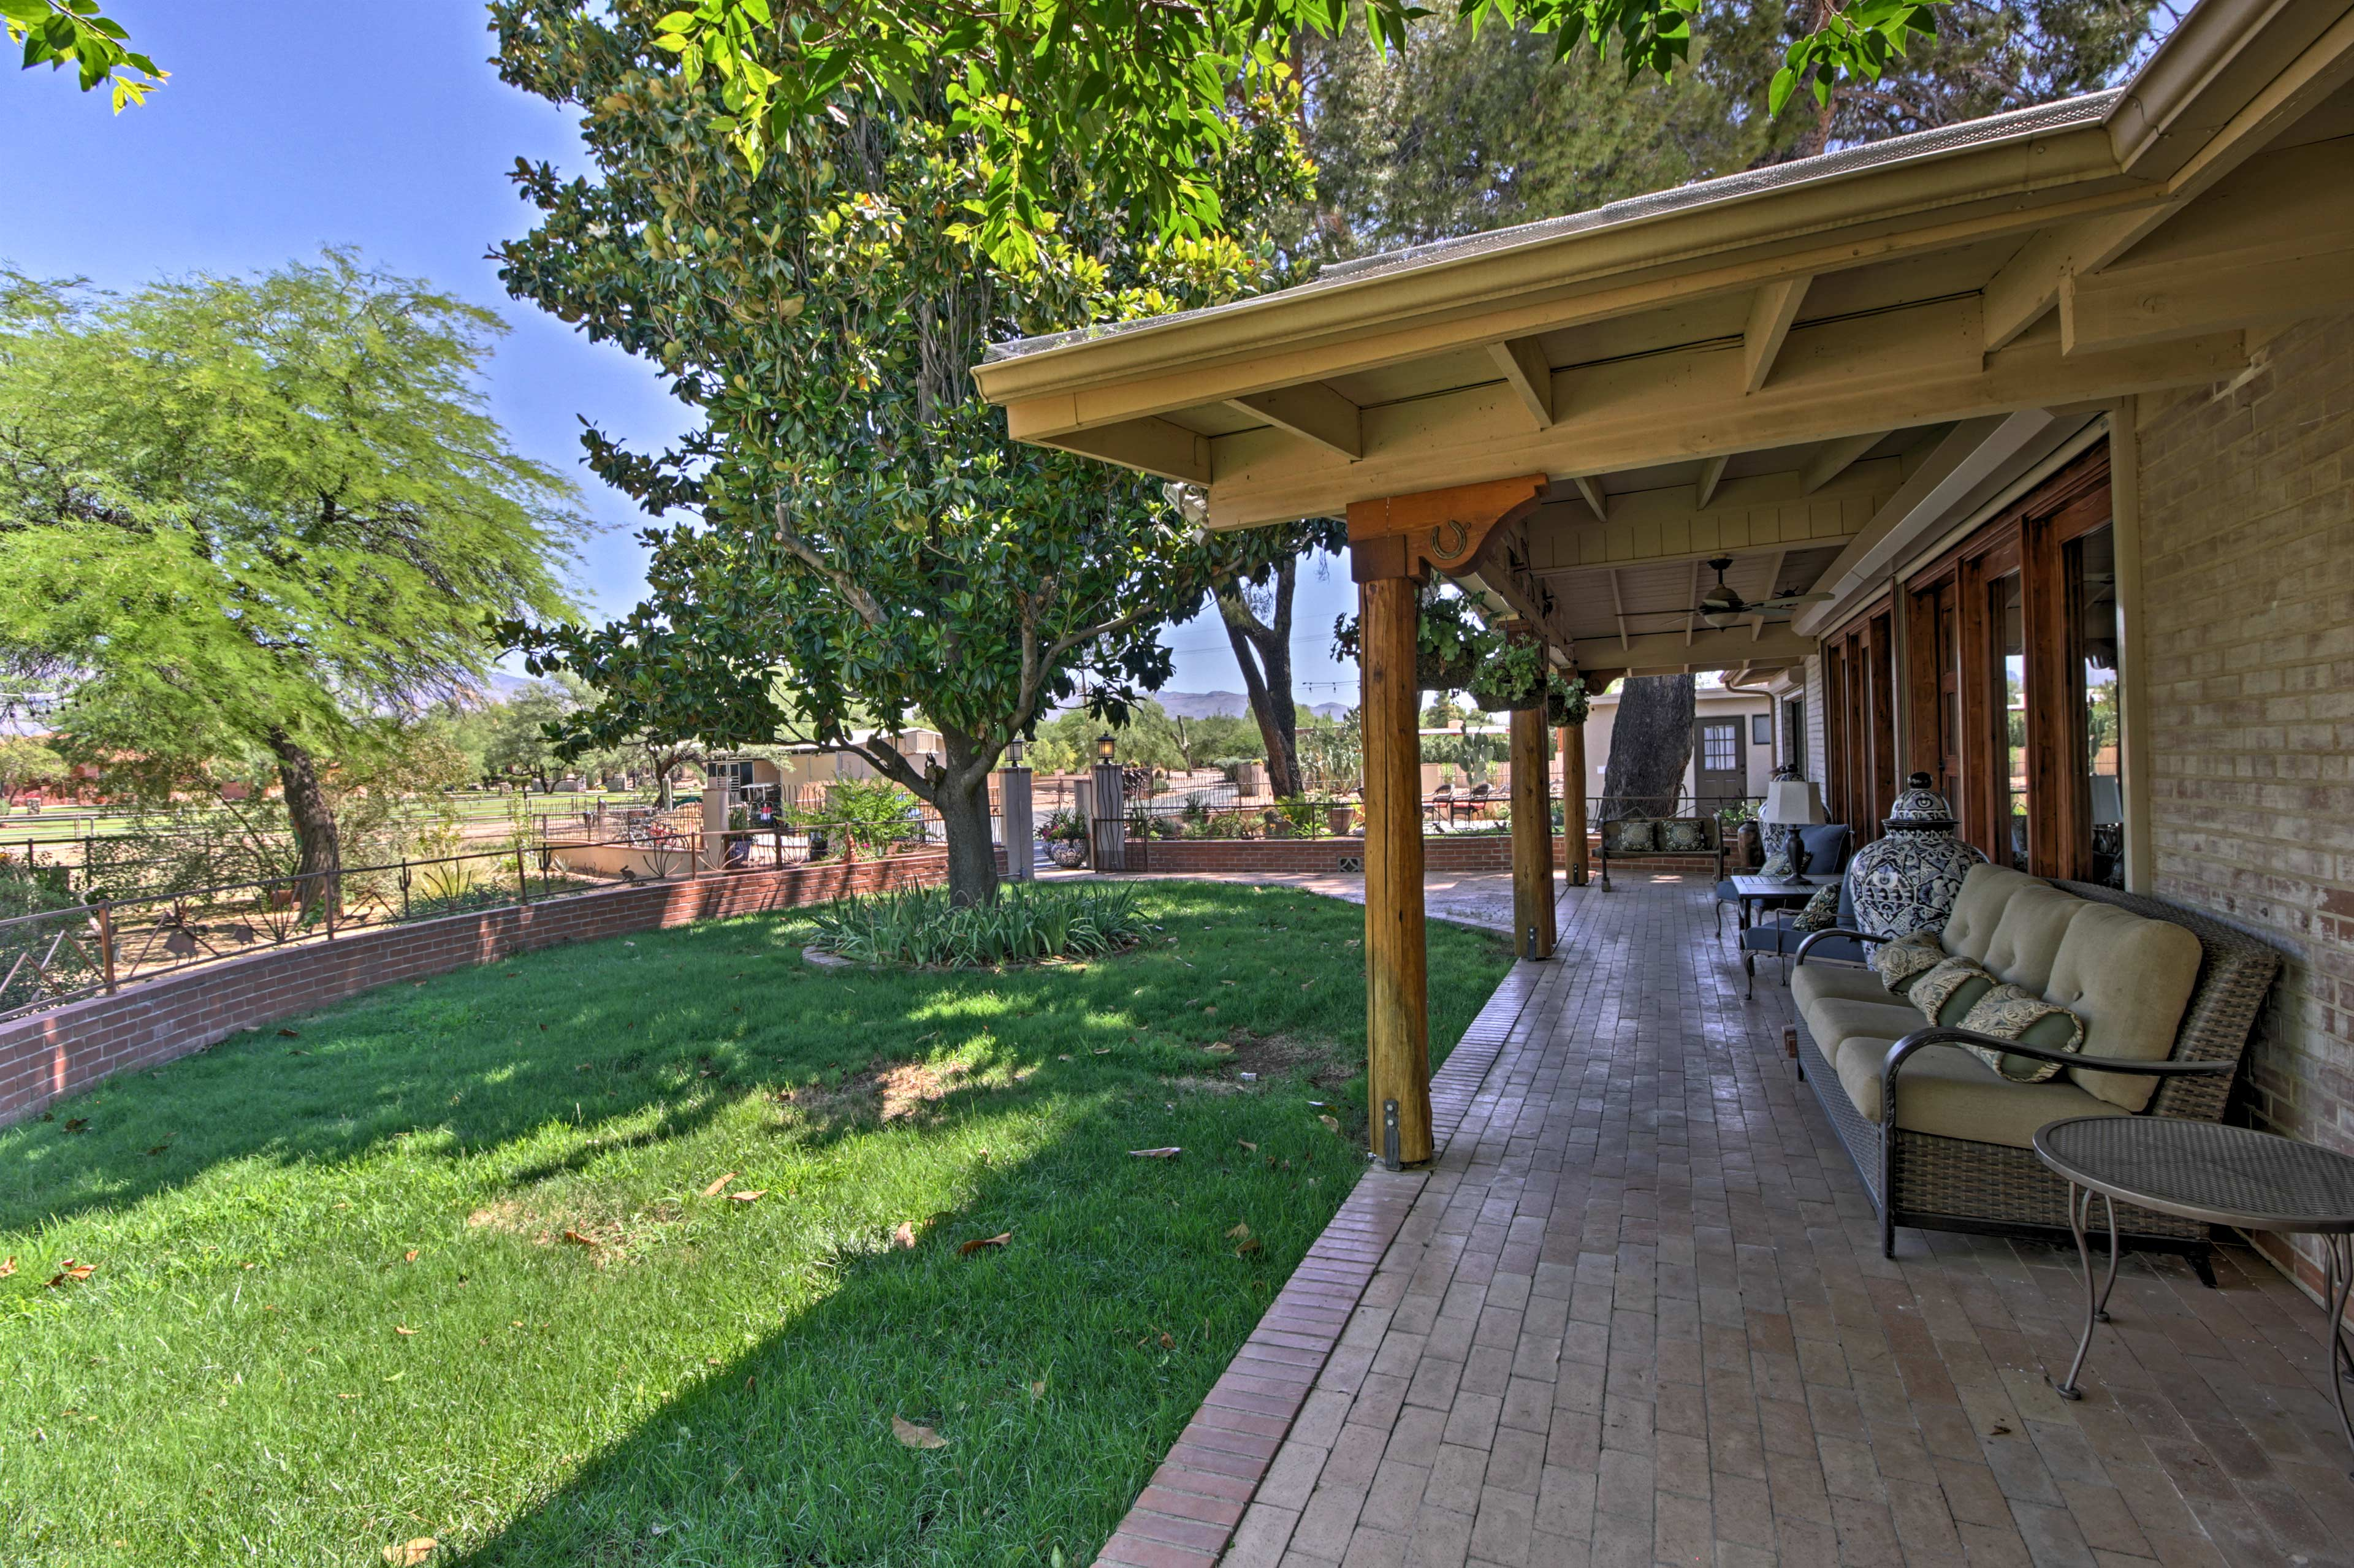 Sip a glass of sweet tea on the expansive porch.